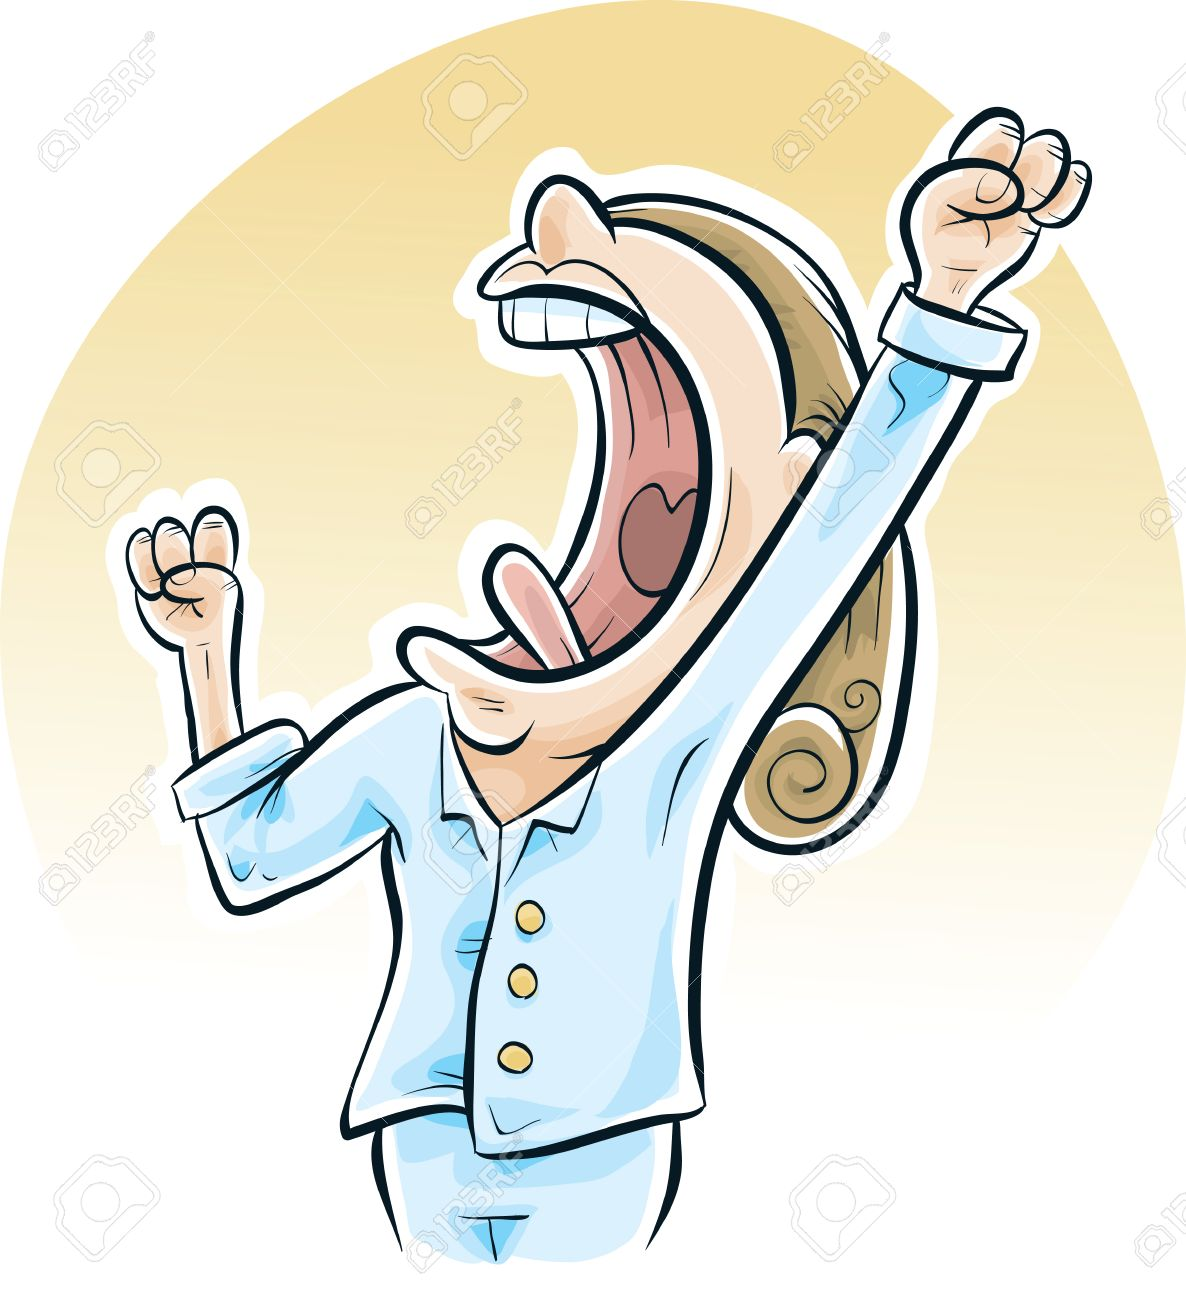 A Cartoon Woman Has A Big Yawn In The Morning As She Wakes Up ... for Clipart Yawn  67qdu